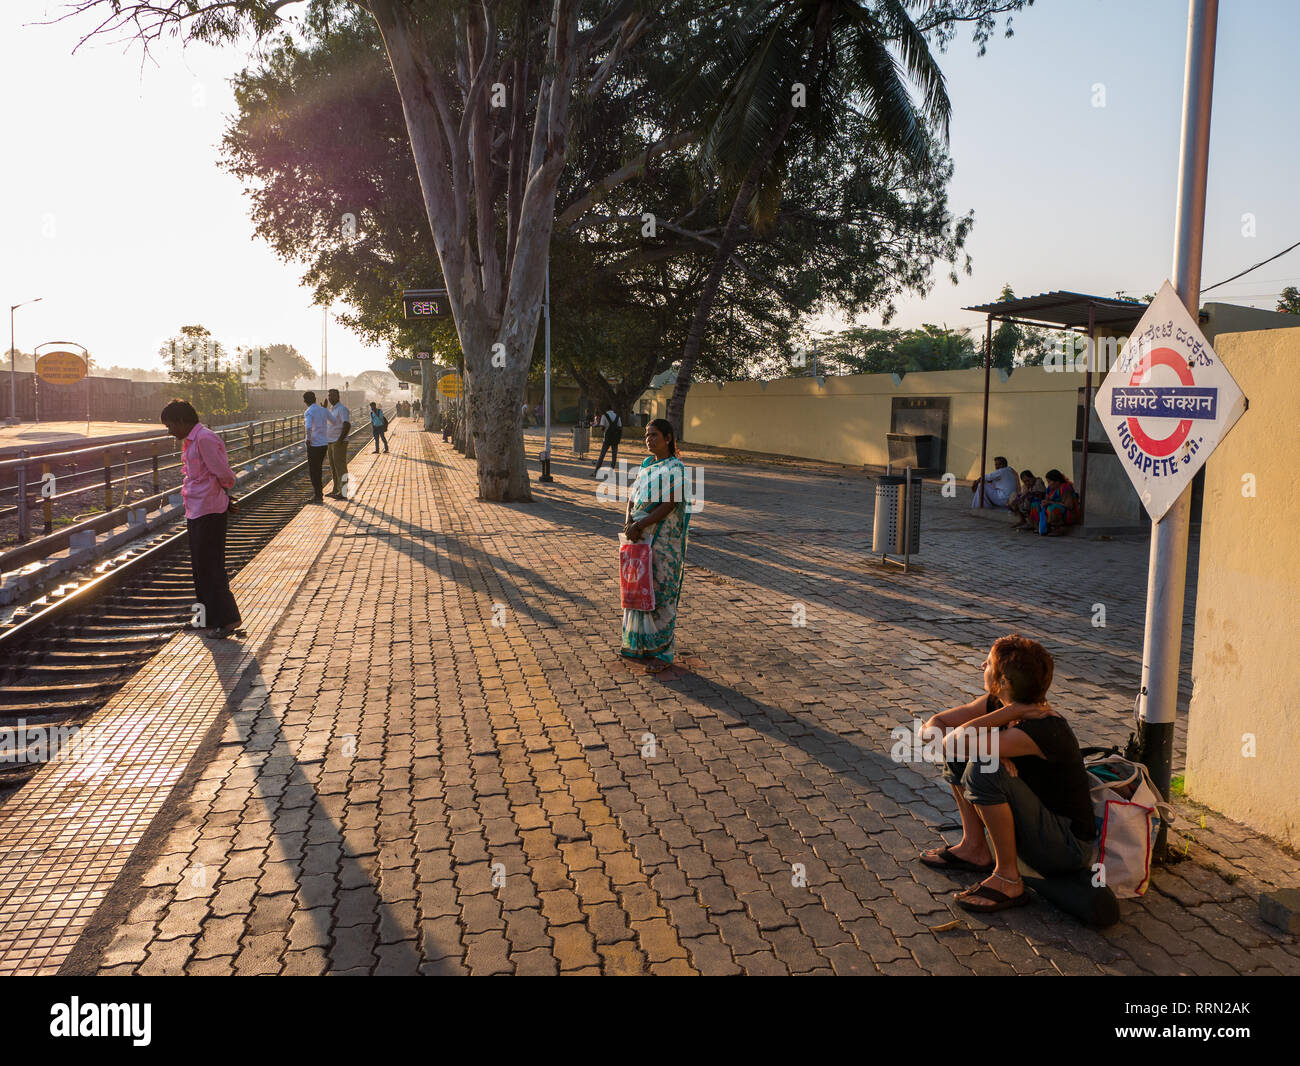 A female western tourist waiting for a train at Hosapete JN railway station near Hampi in India Stock Photo